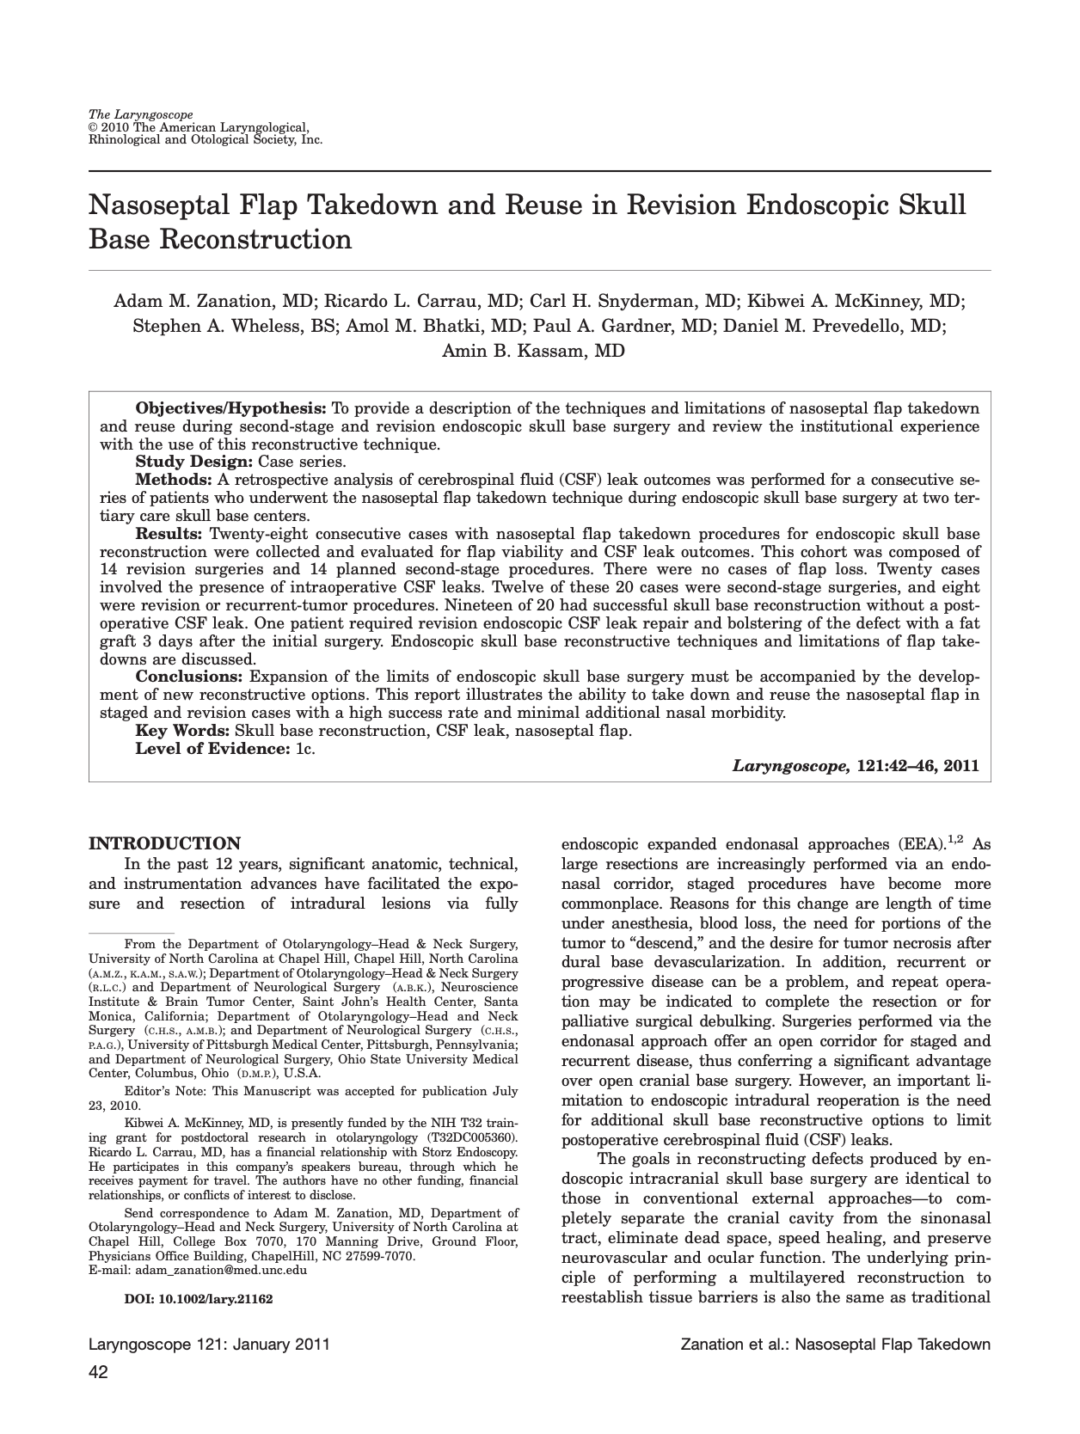 Nasoseptal Flap Takedown and Reuse in Revision Endoscopic Skull Base Reconstruction